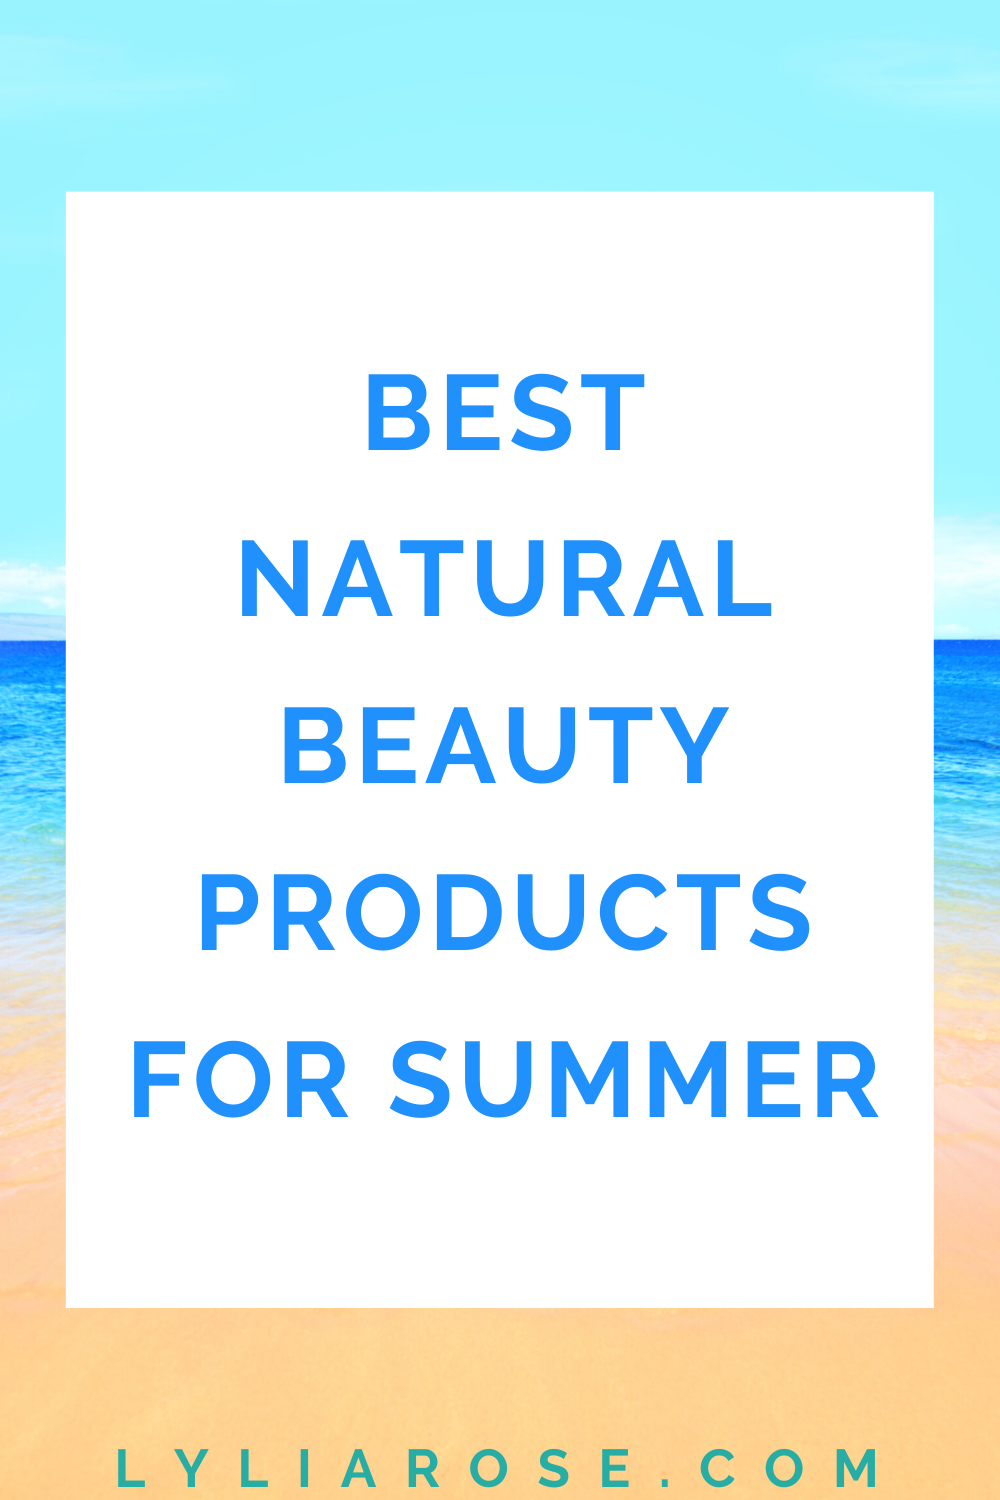 Best natural beauty products for summer (1)